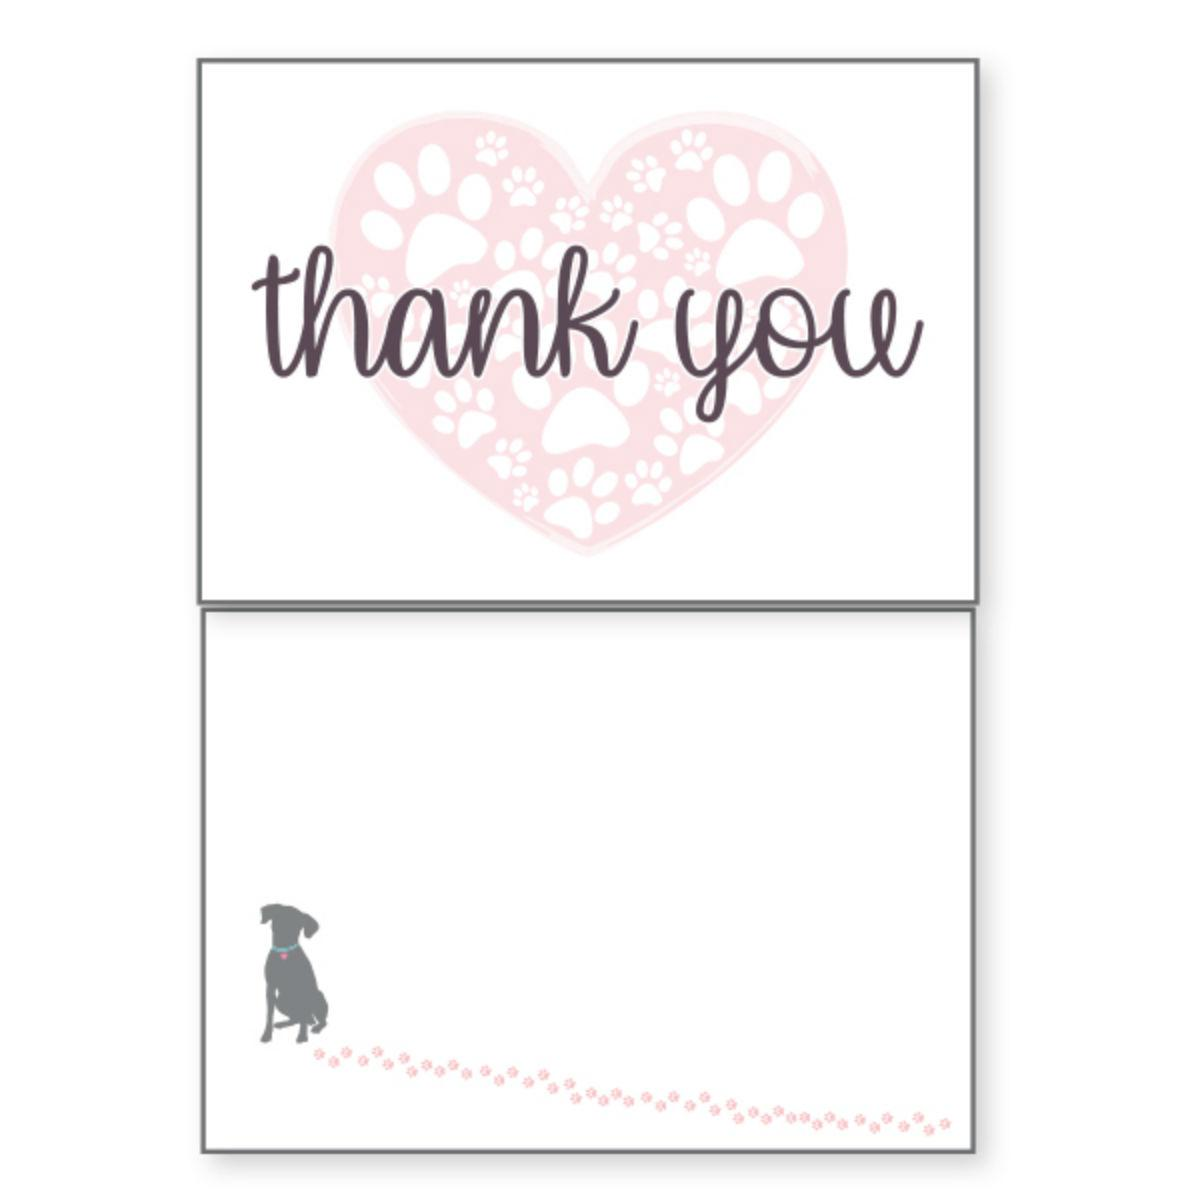 Thank You Greeting Card by Dog Speak - Paw Prints in Heart